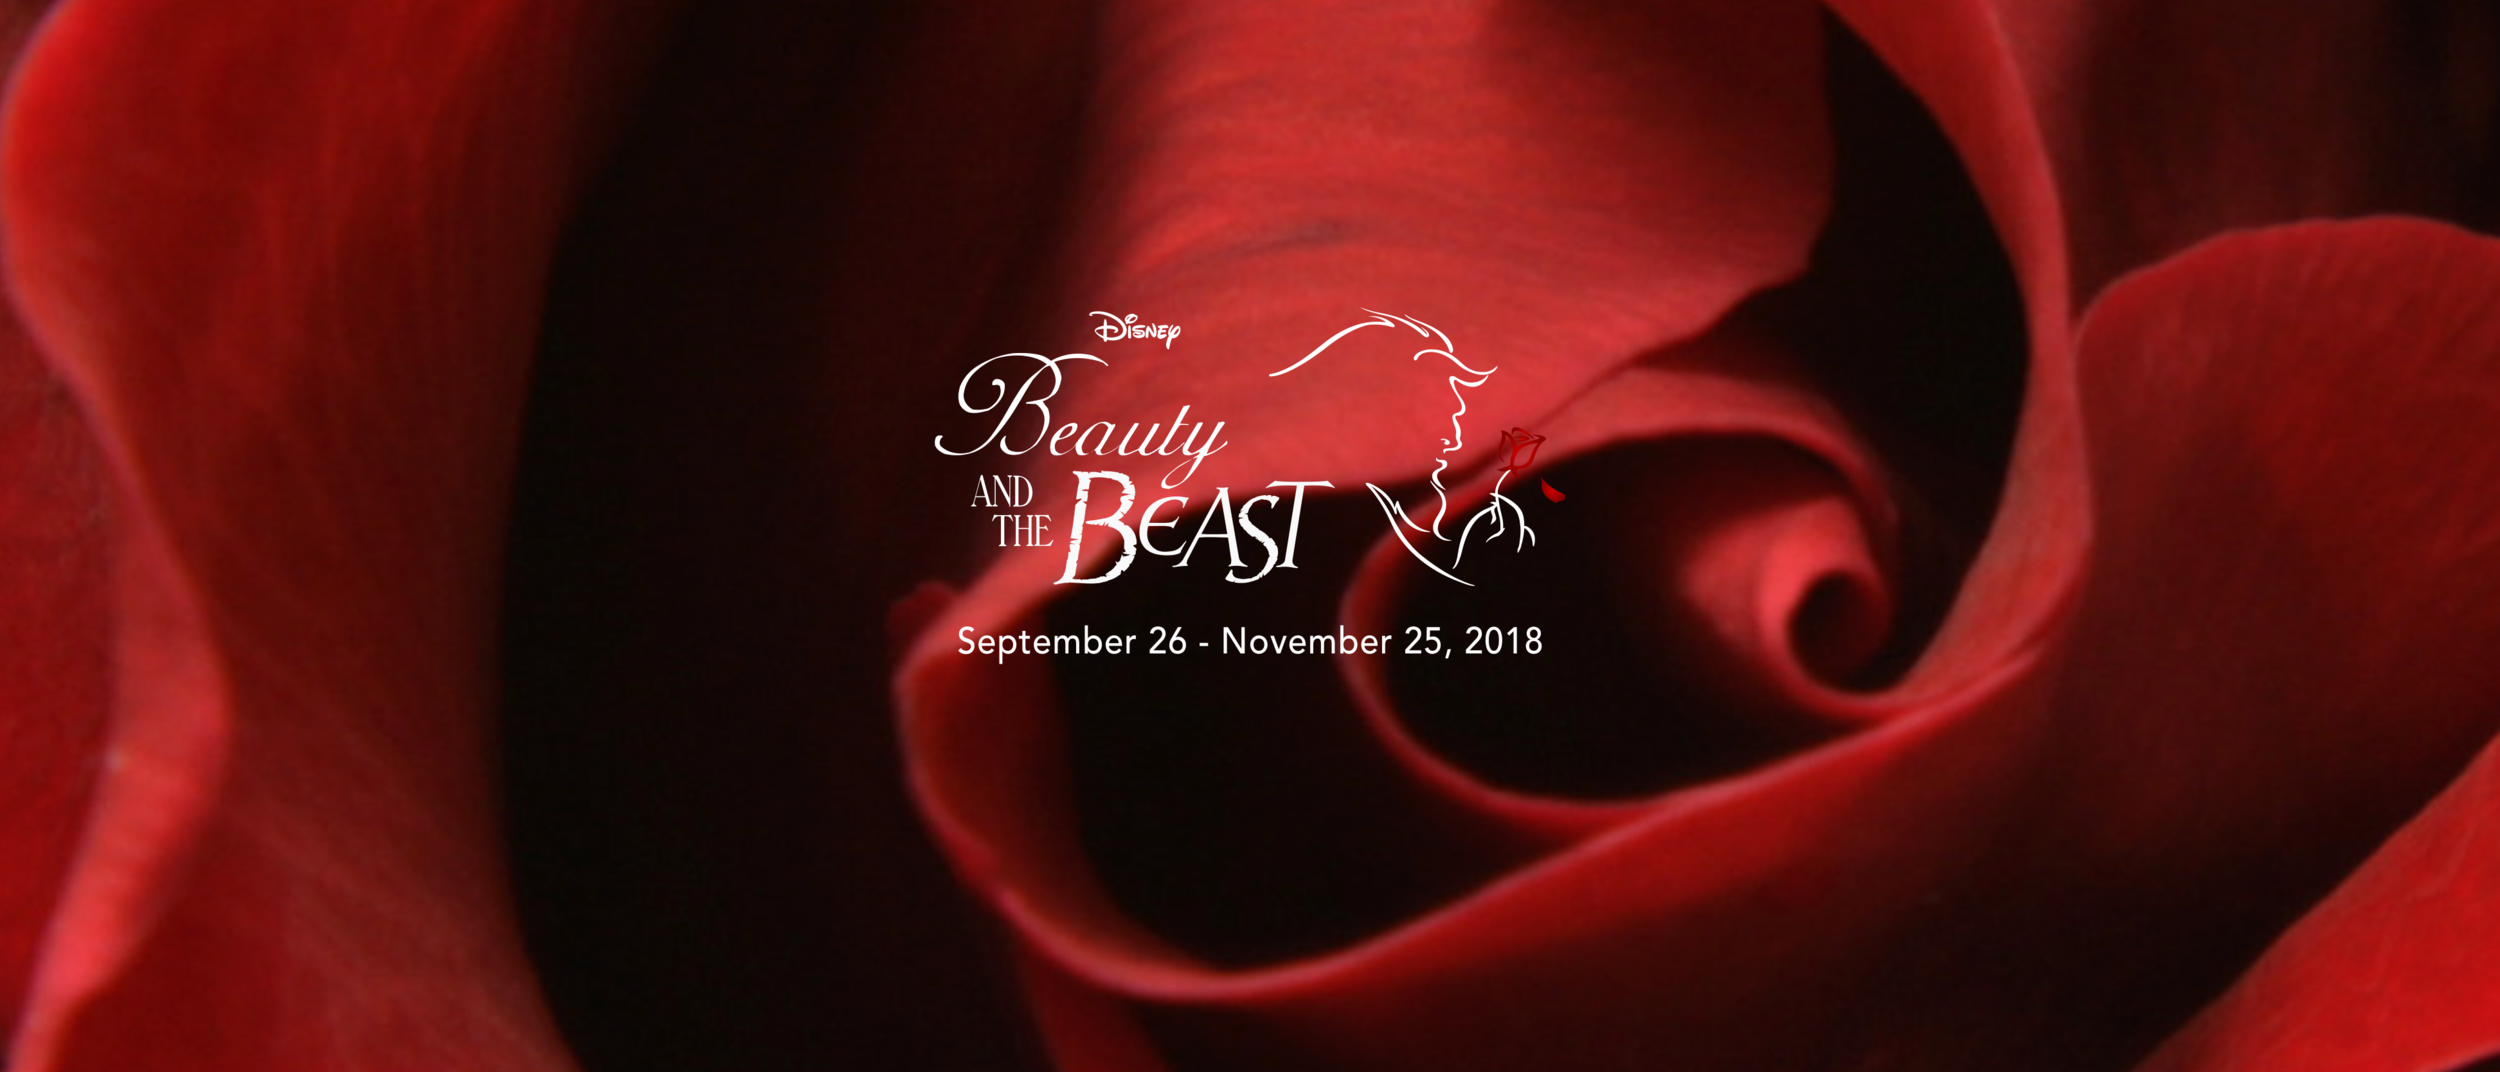 Disneys beauty and the beast tour stafford virginia a beautiful young woman takes the place of her imprisoned father in the castle of a beast who is really a cursed prince she teaches him to be courteous izmirmasajfo